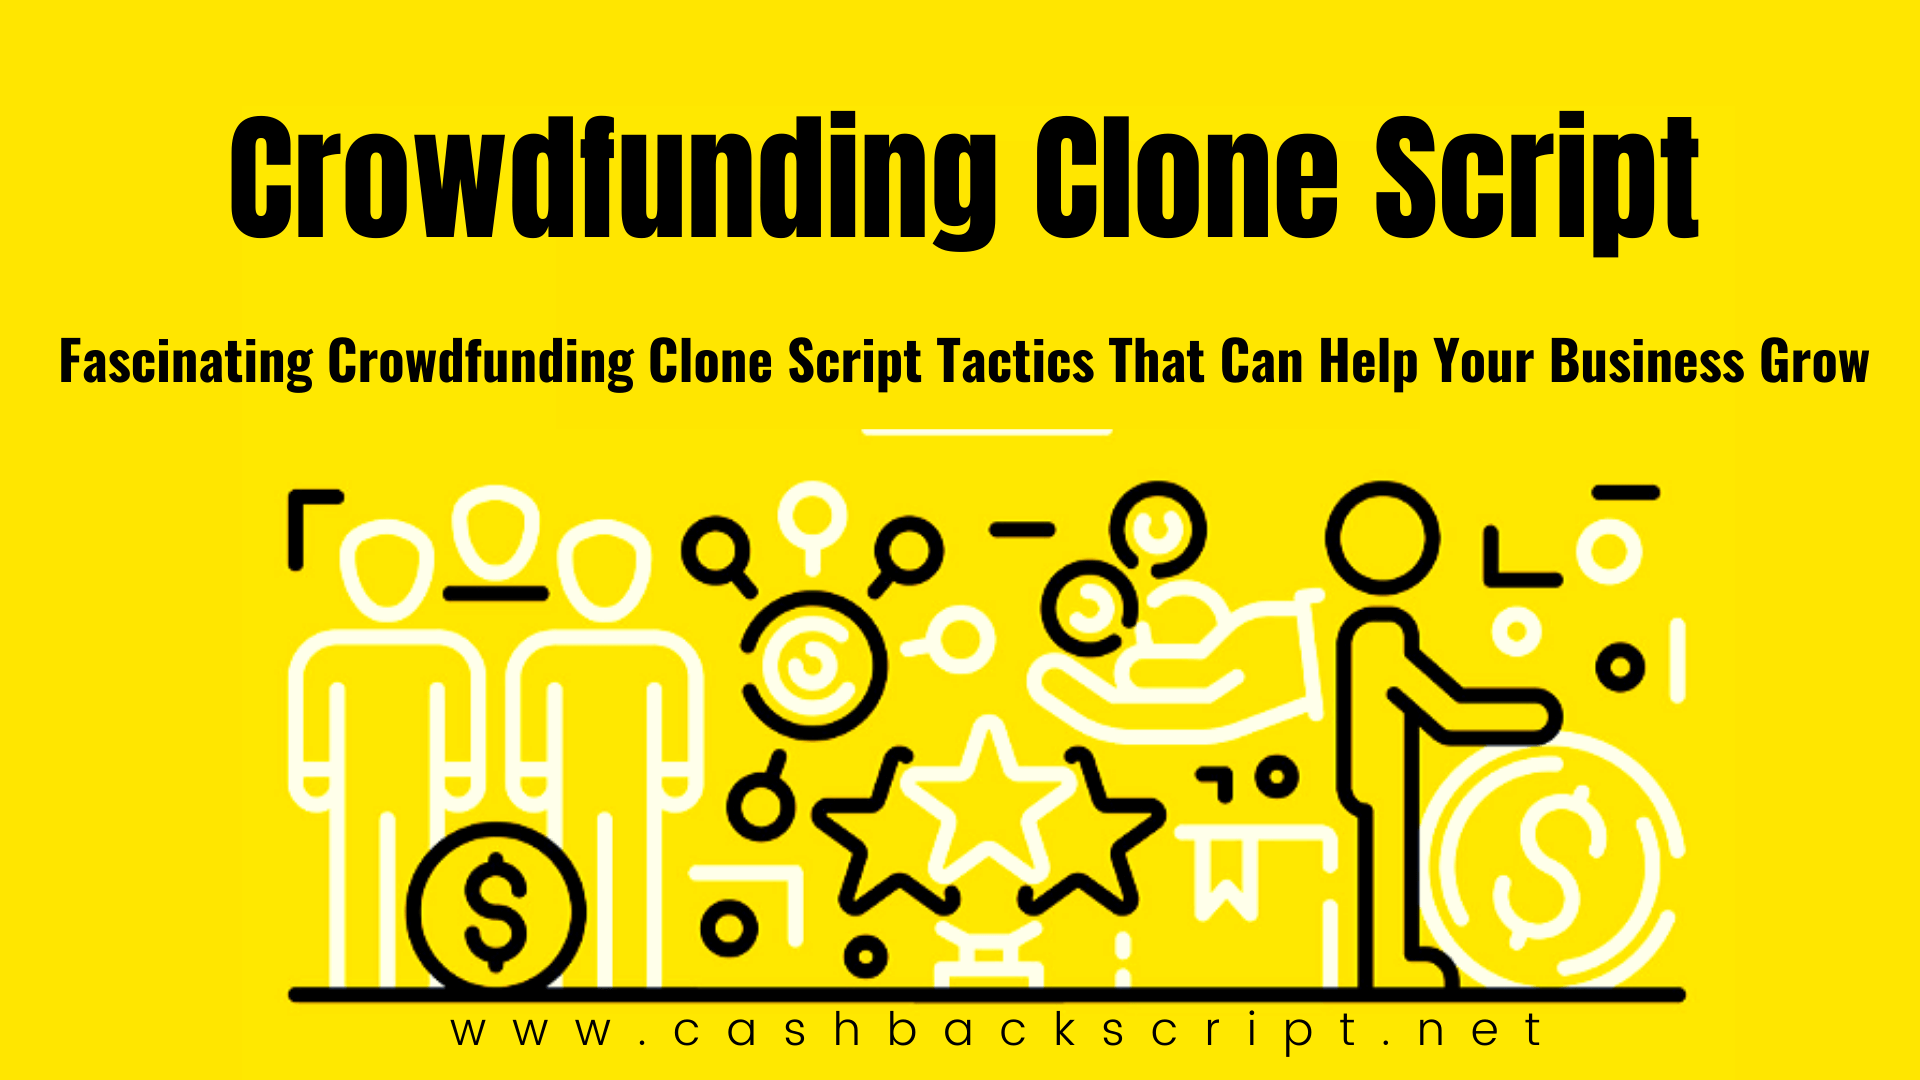 Fascinating Crowdfunding Clone Script Tactics That Can Help Your Business Grow